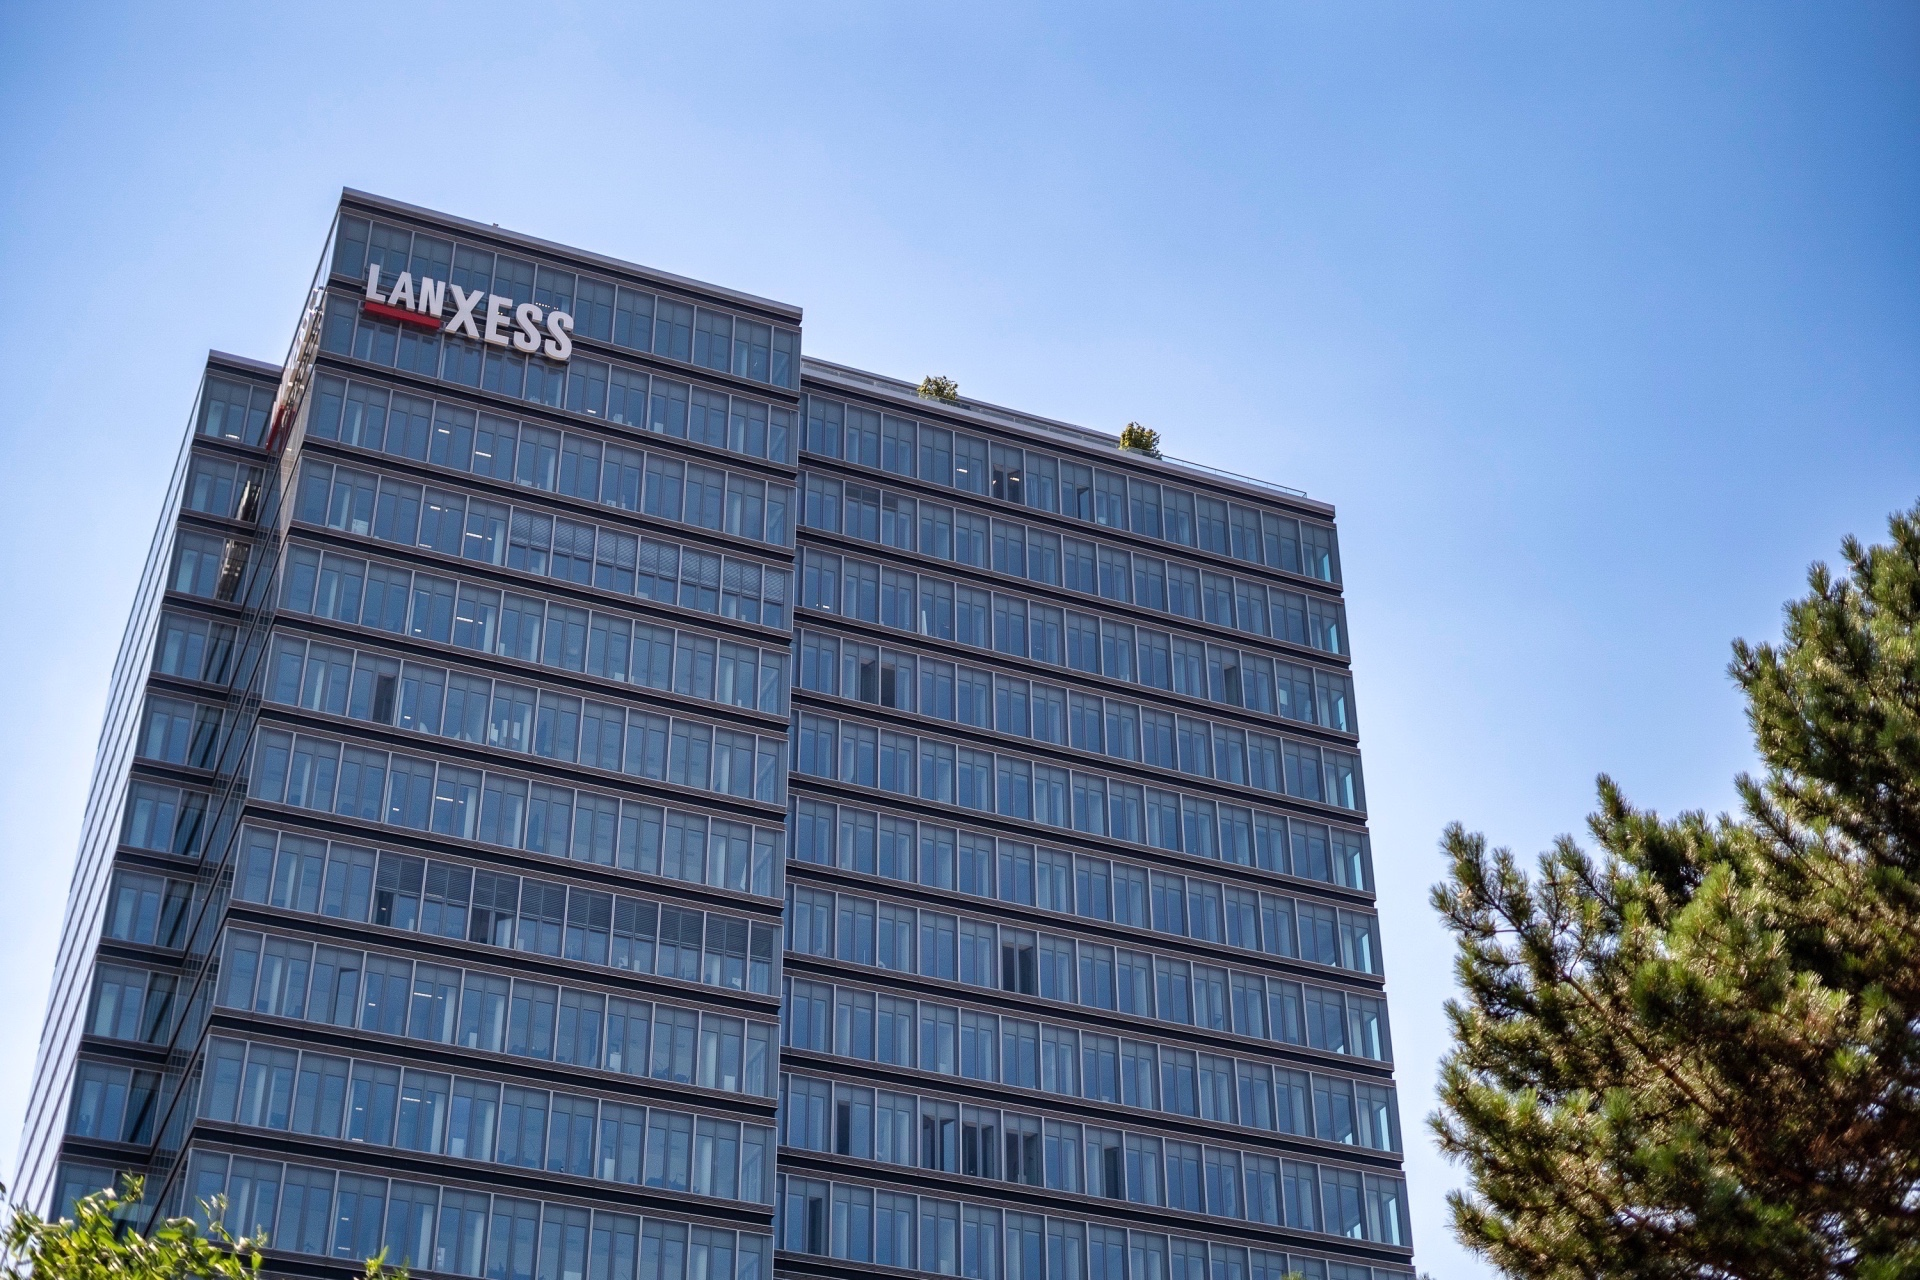 Lanxess Tower in Deutz - Immobilienmakler Köln